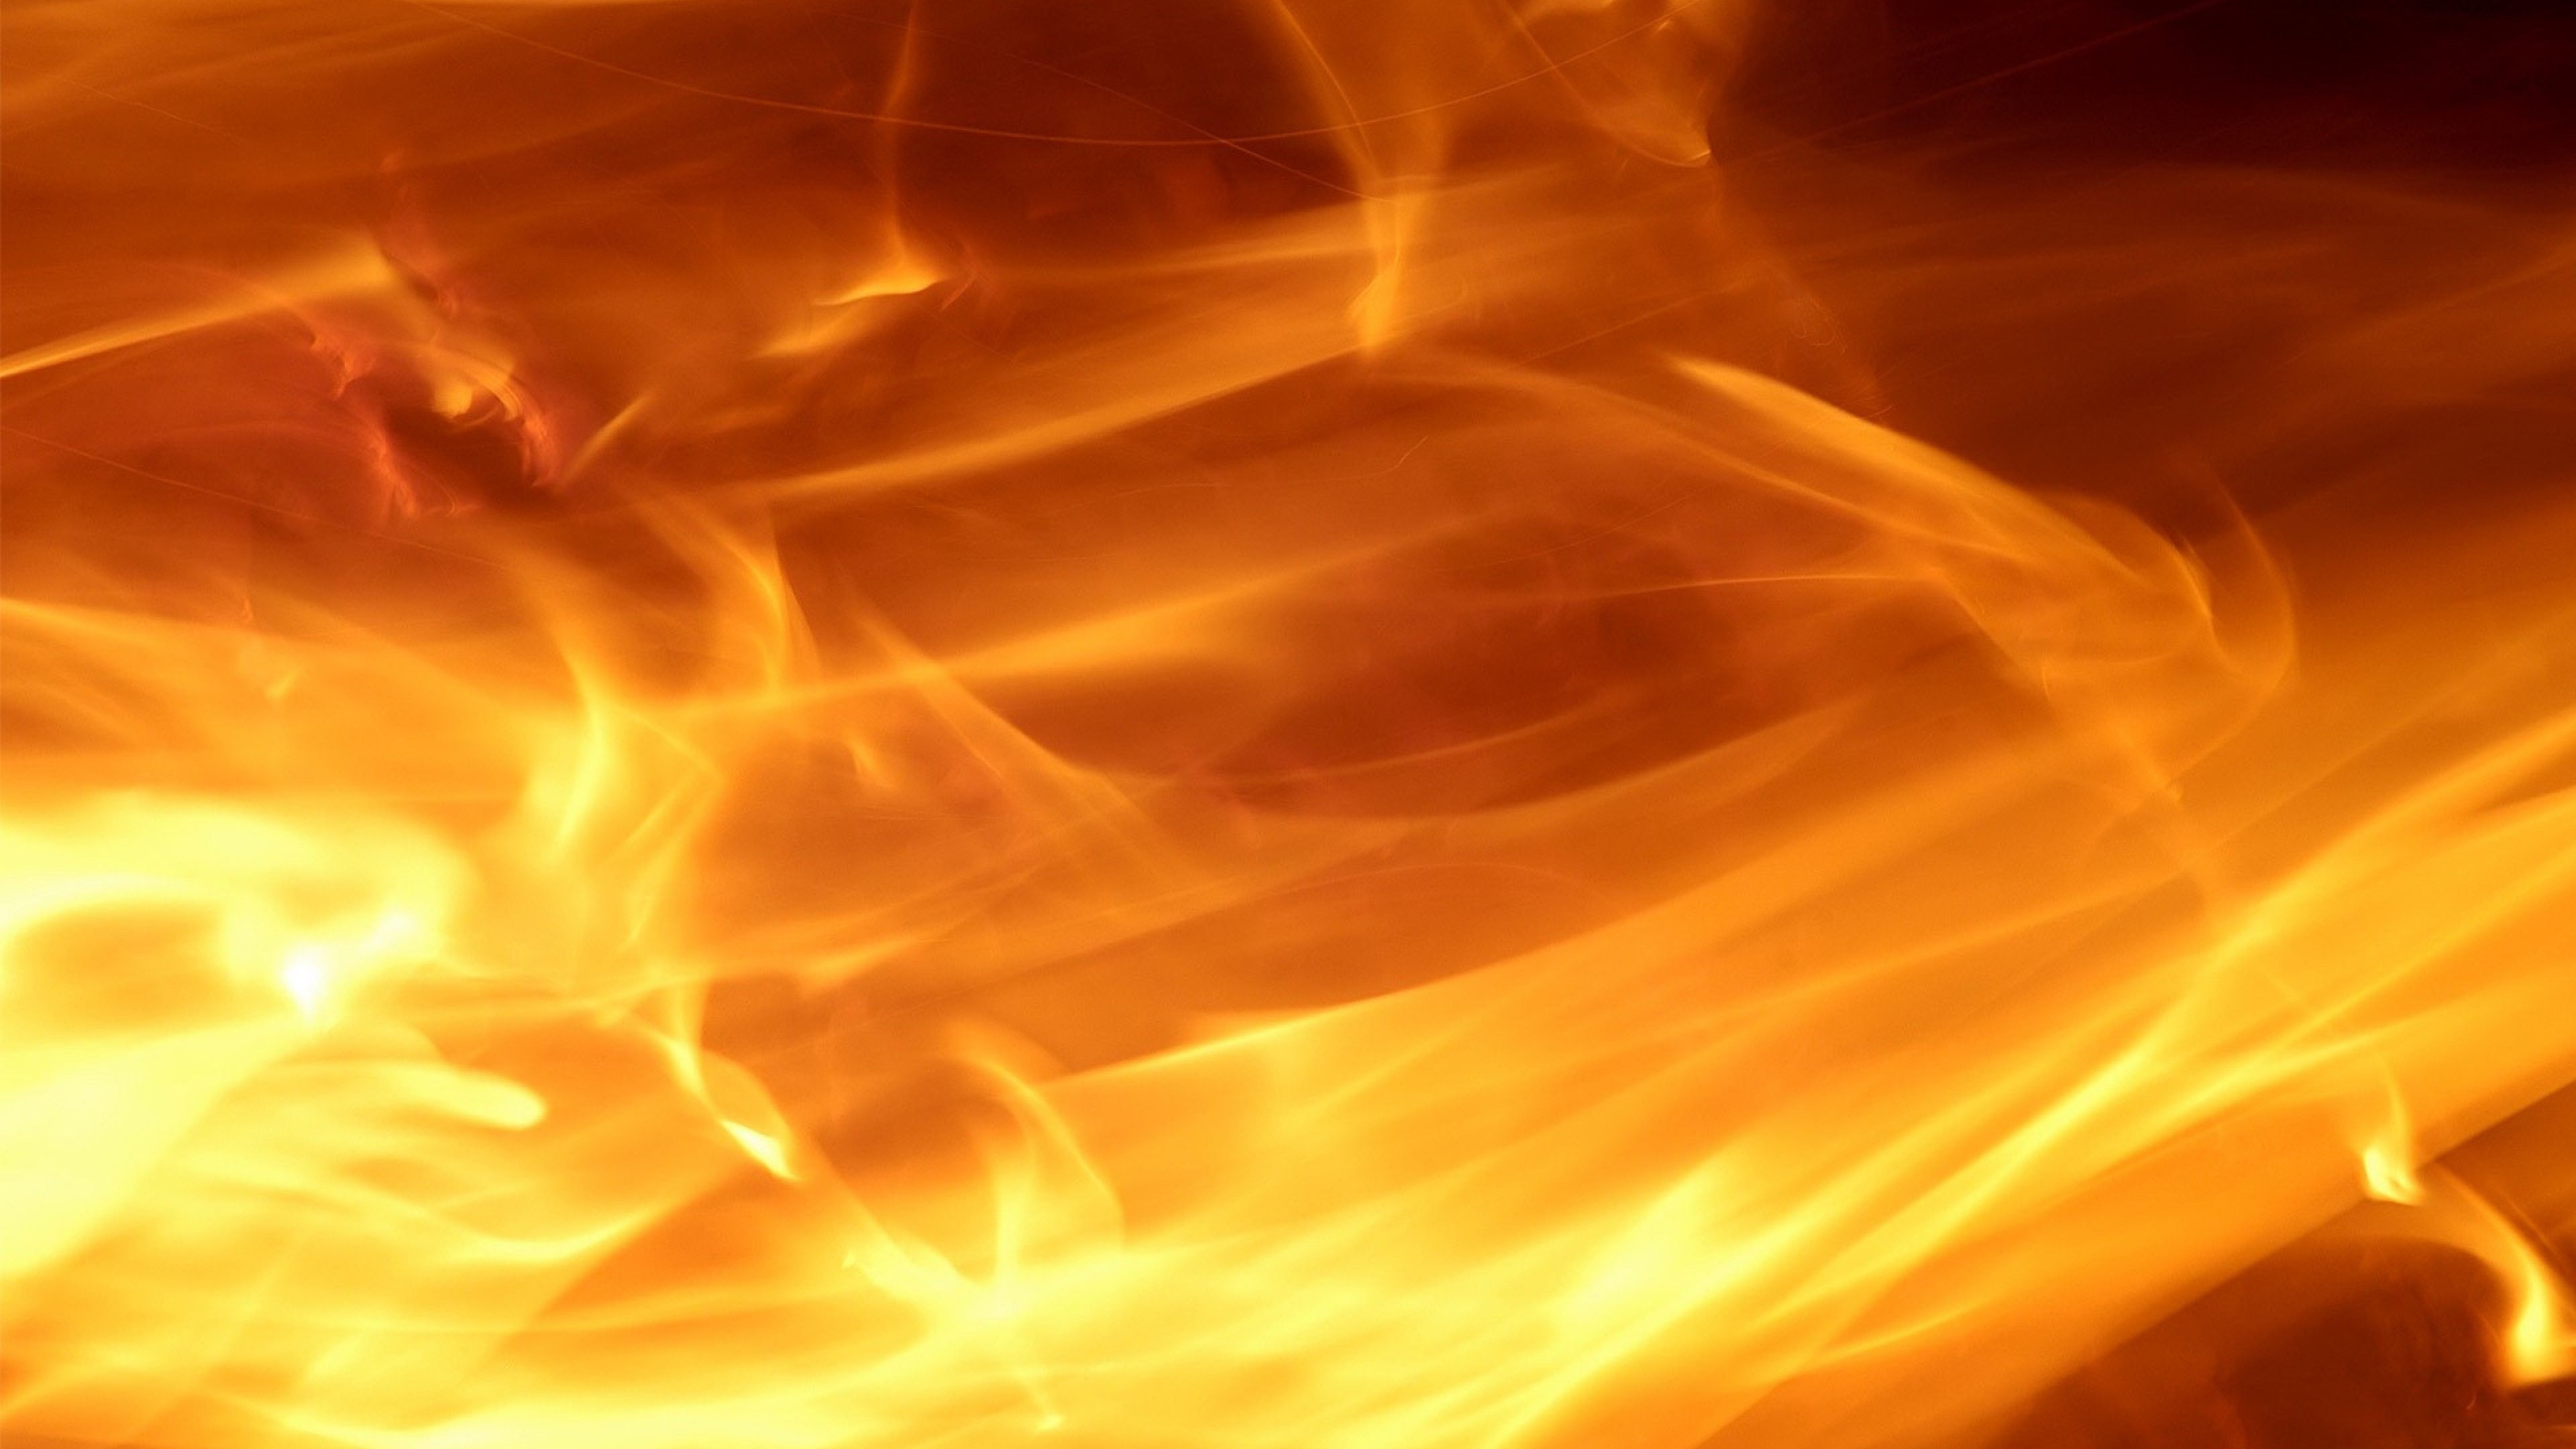 Res: 3840x2160, Fire blurred background abstract wallpapers HD.